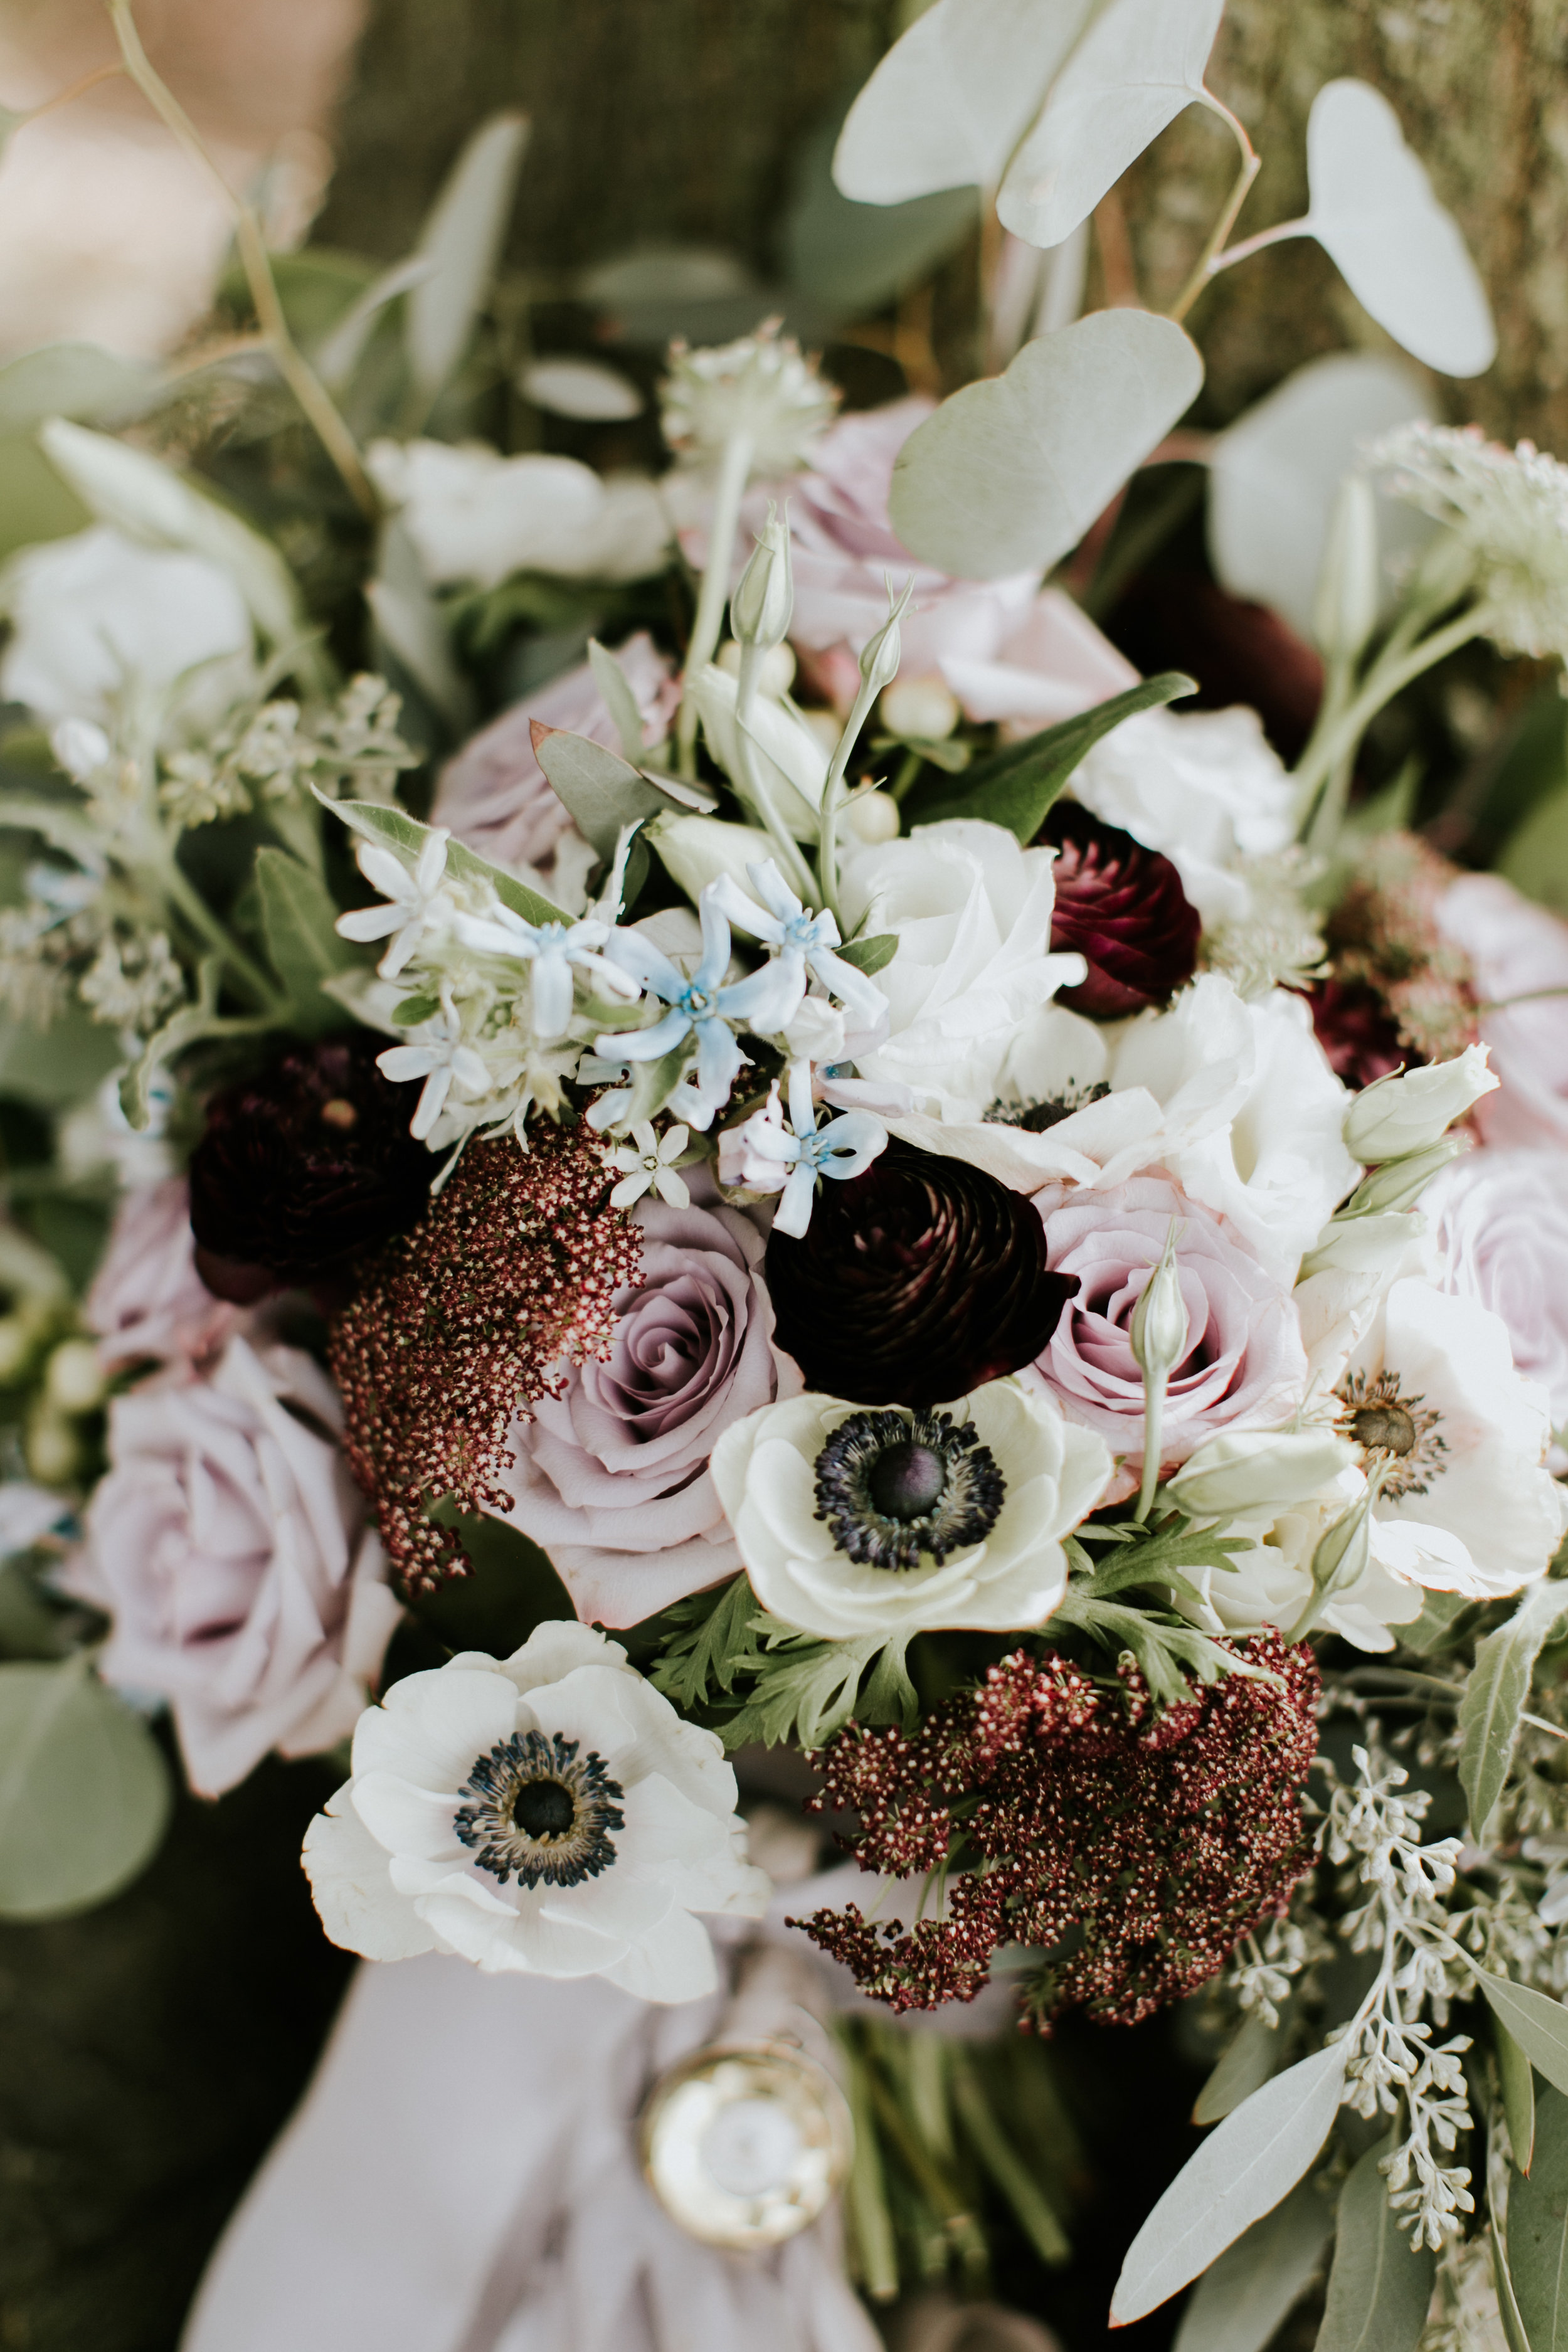 Rustic Oyster Themed Eastern Shore Maryland Outdoor Wedding by East Made Event Company Wedding Planner and Bekah Kay Creative199.jpg